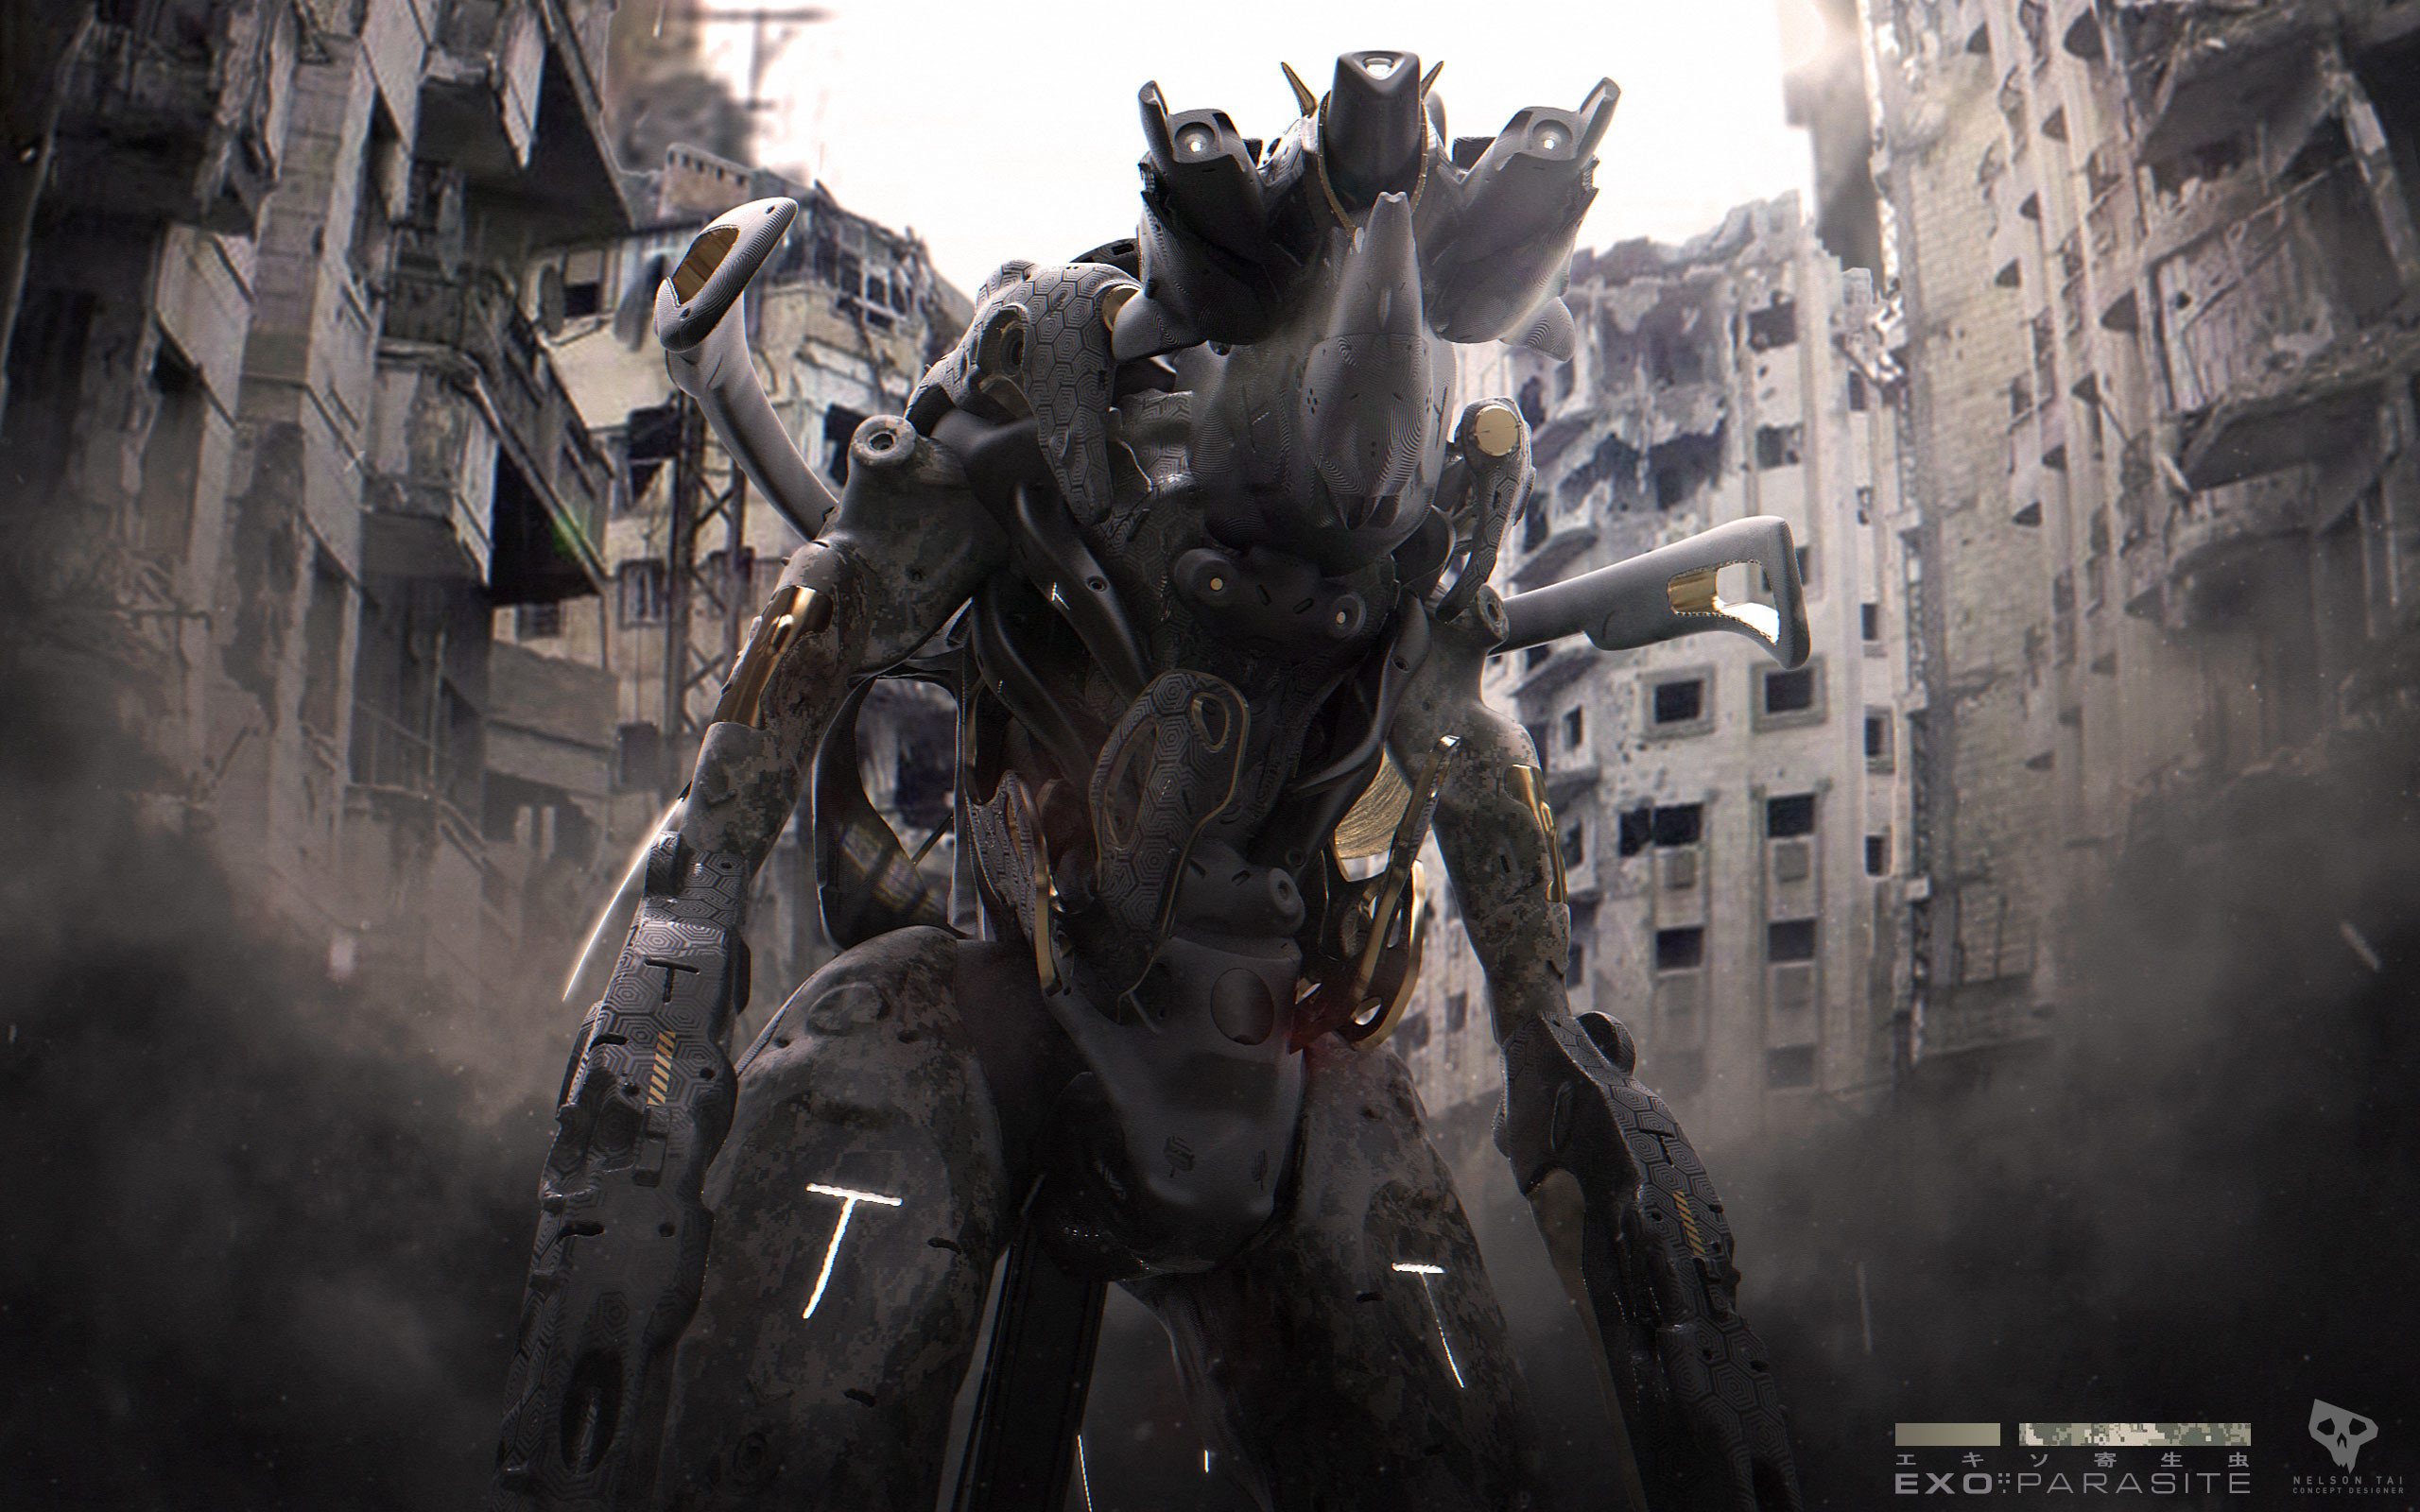 The exo:parasite is here....